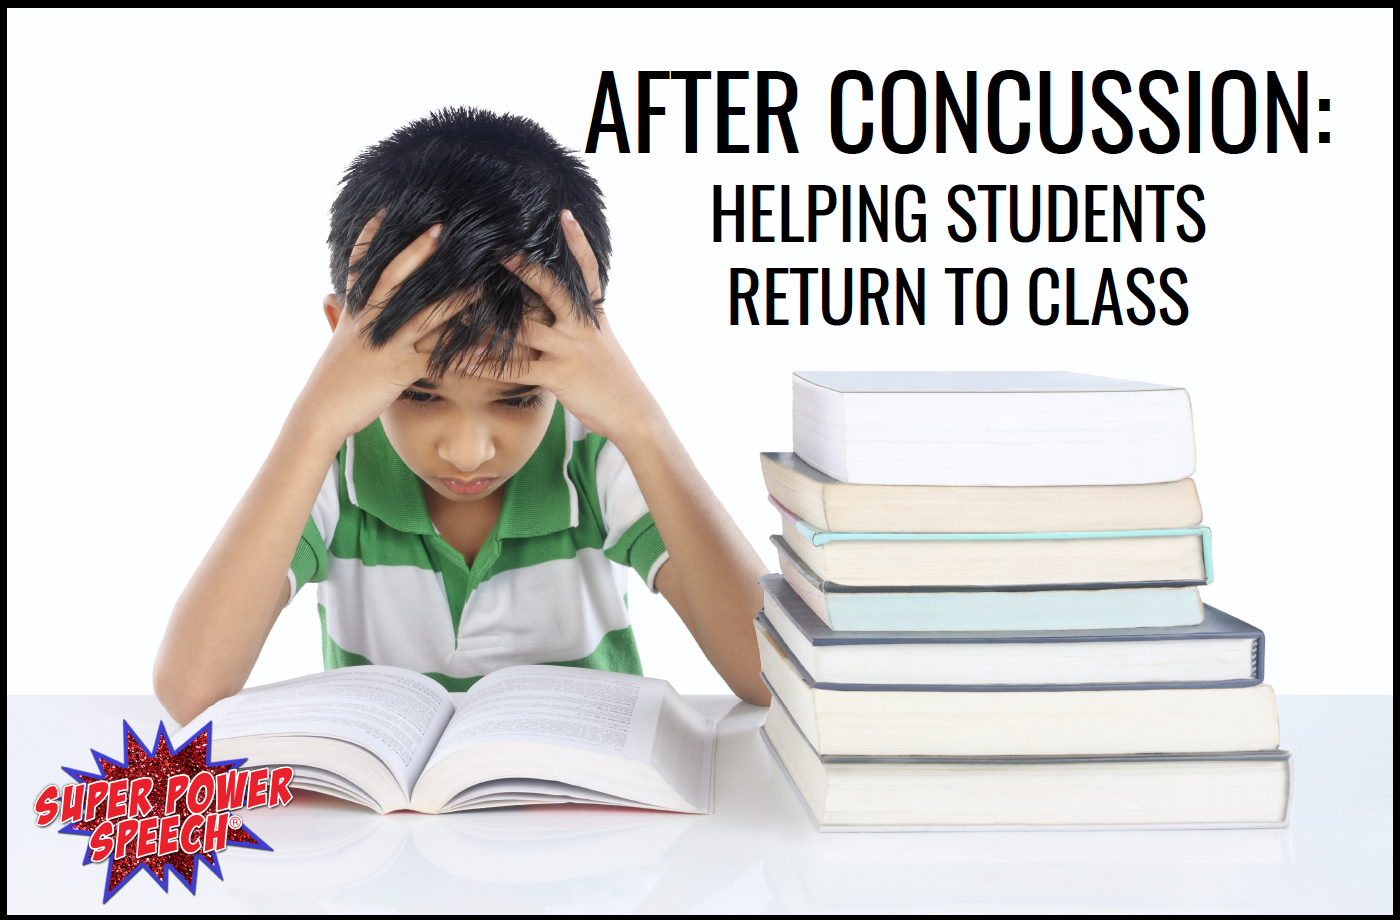 After concussion: Helping students return to class